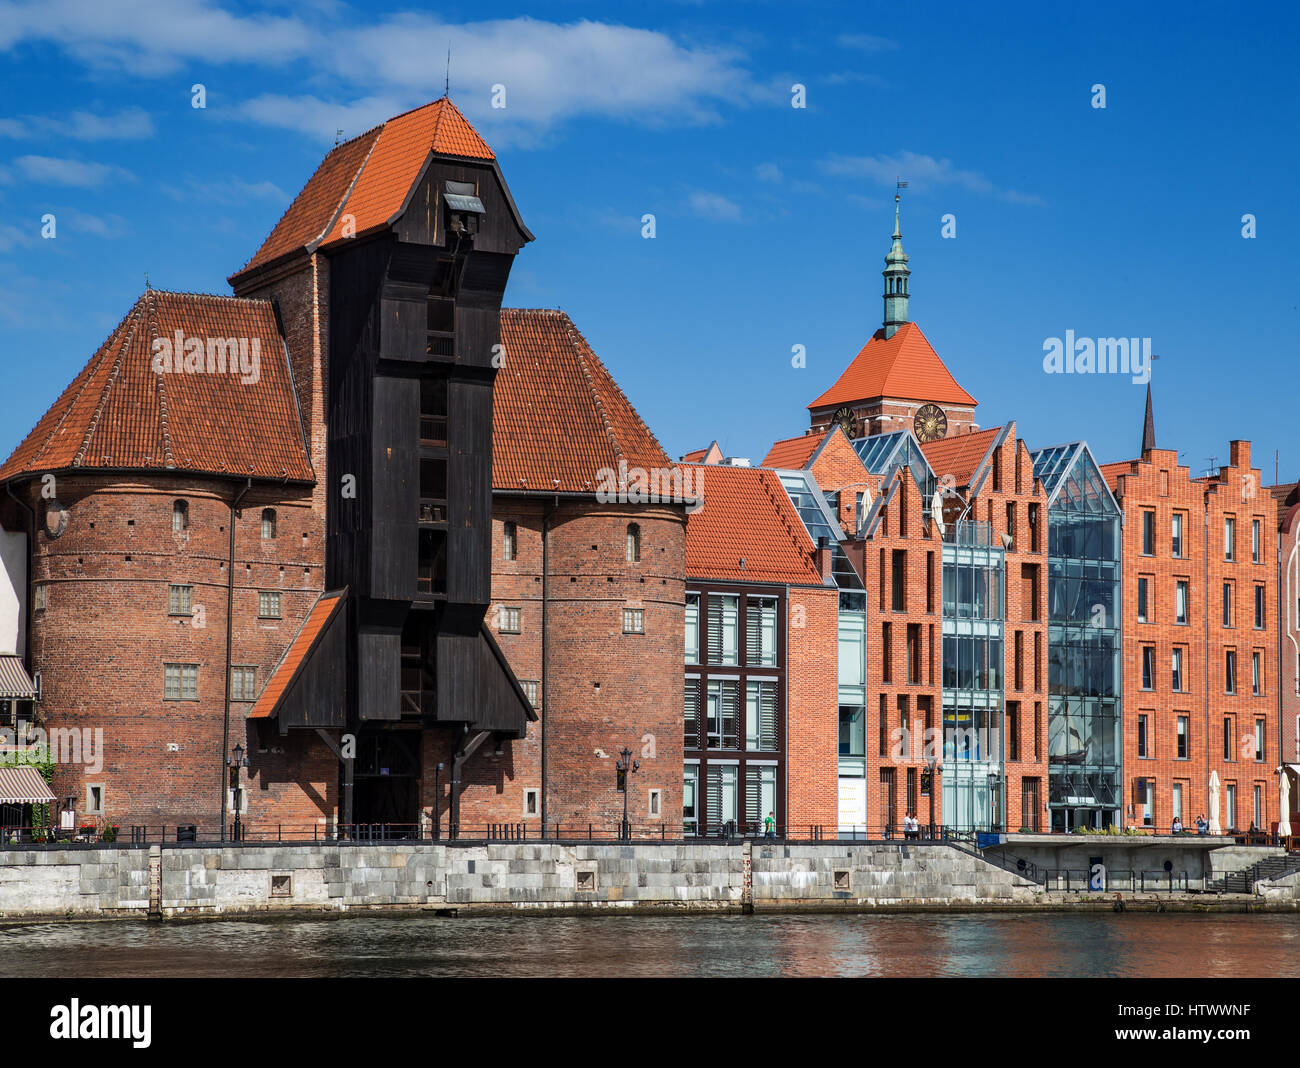 Gdansk, Danzig an old medieval polish and german city, the old granary - Krantor. View on sunny day with blue sky - Stock Image